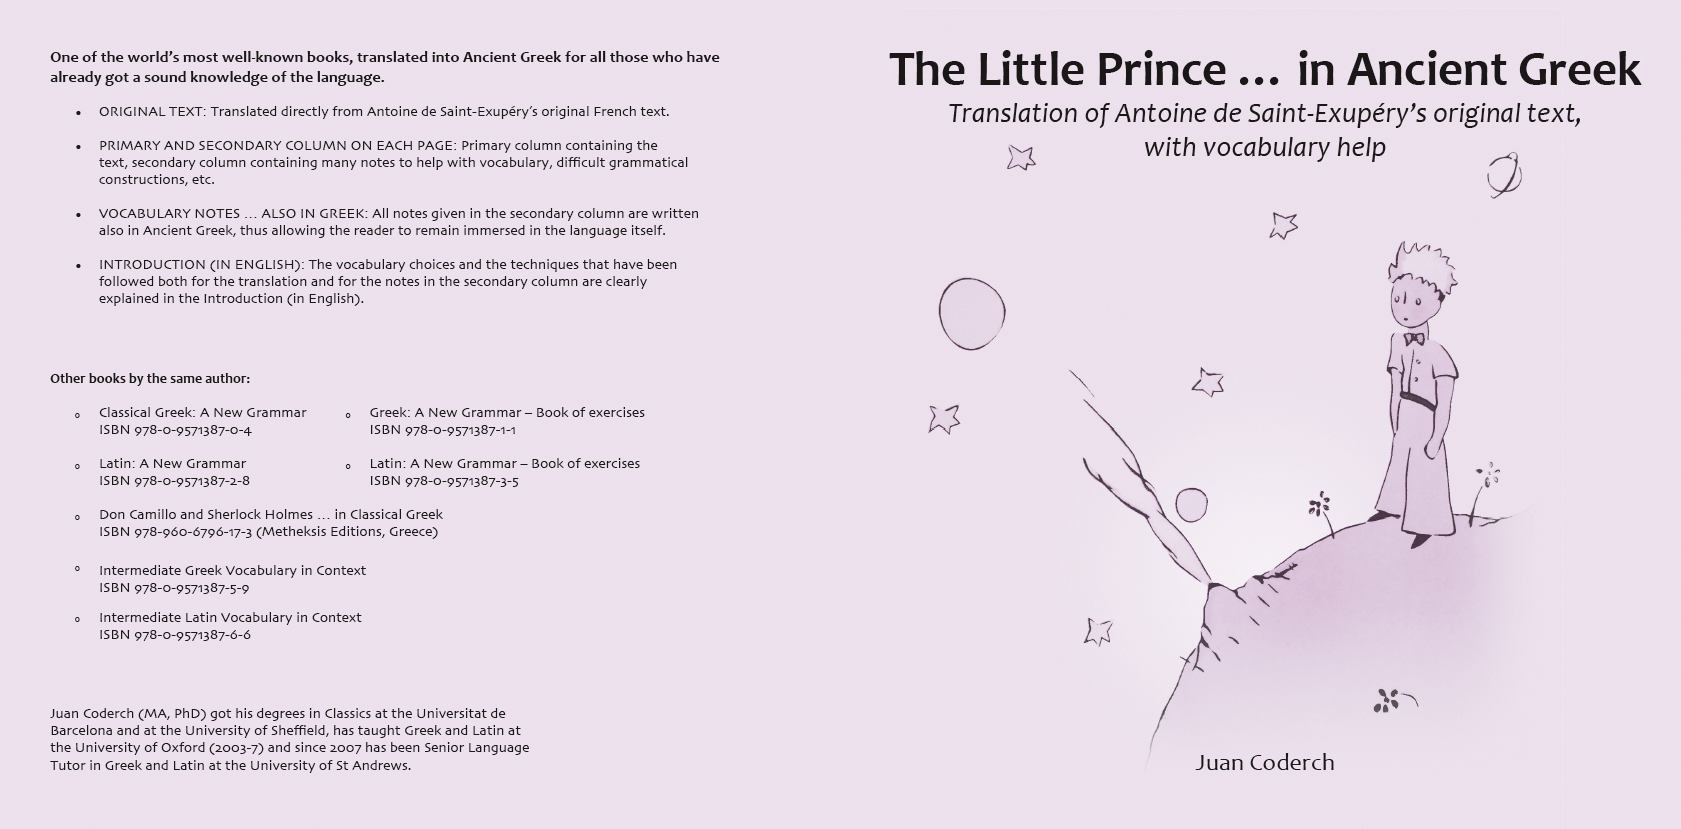 The Little Prince in Ancient Greek - Classical Greek: A New Grammar